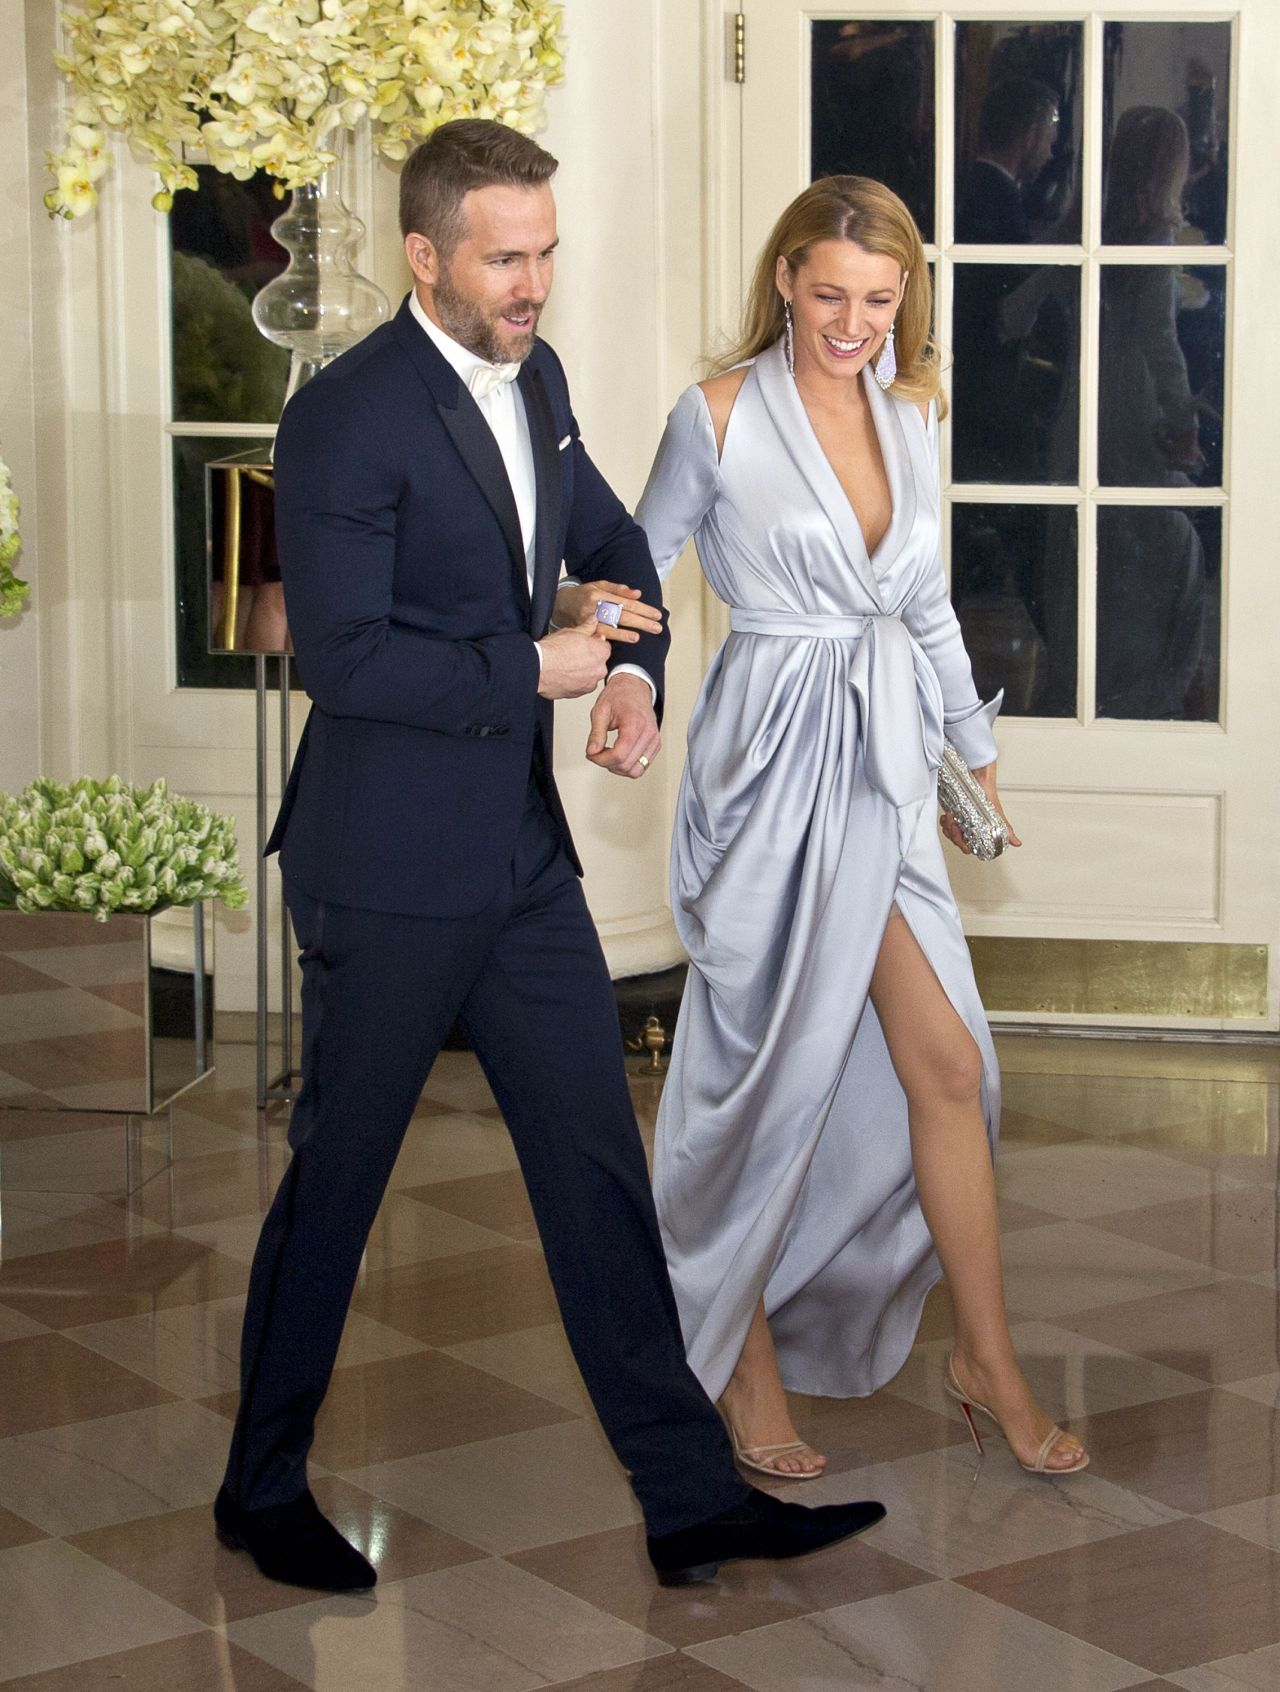 blake-lively-trudeau-state-dinner-in-washington-dc-3-10-2016-5